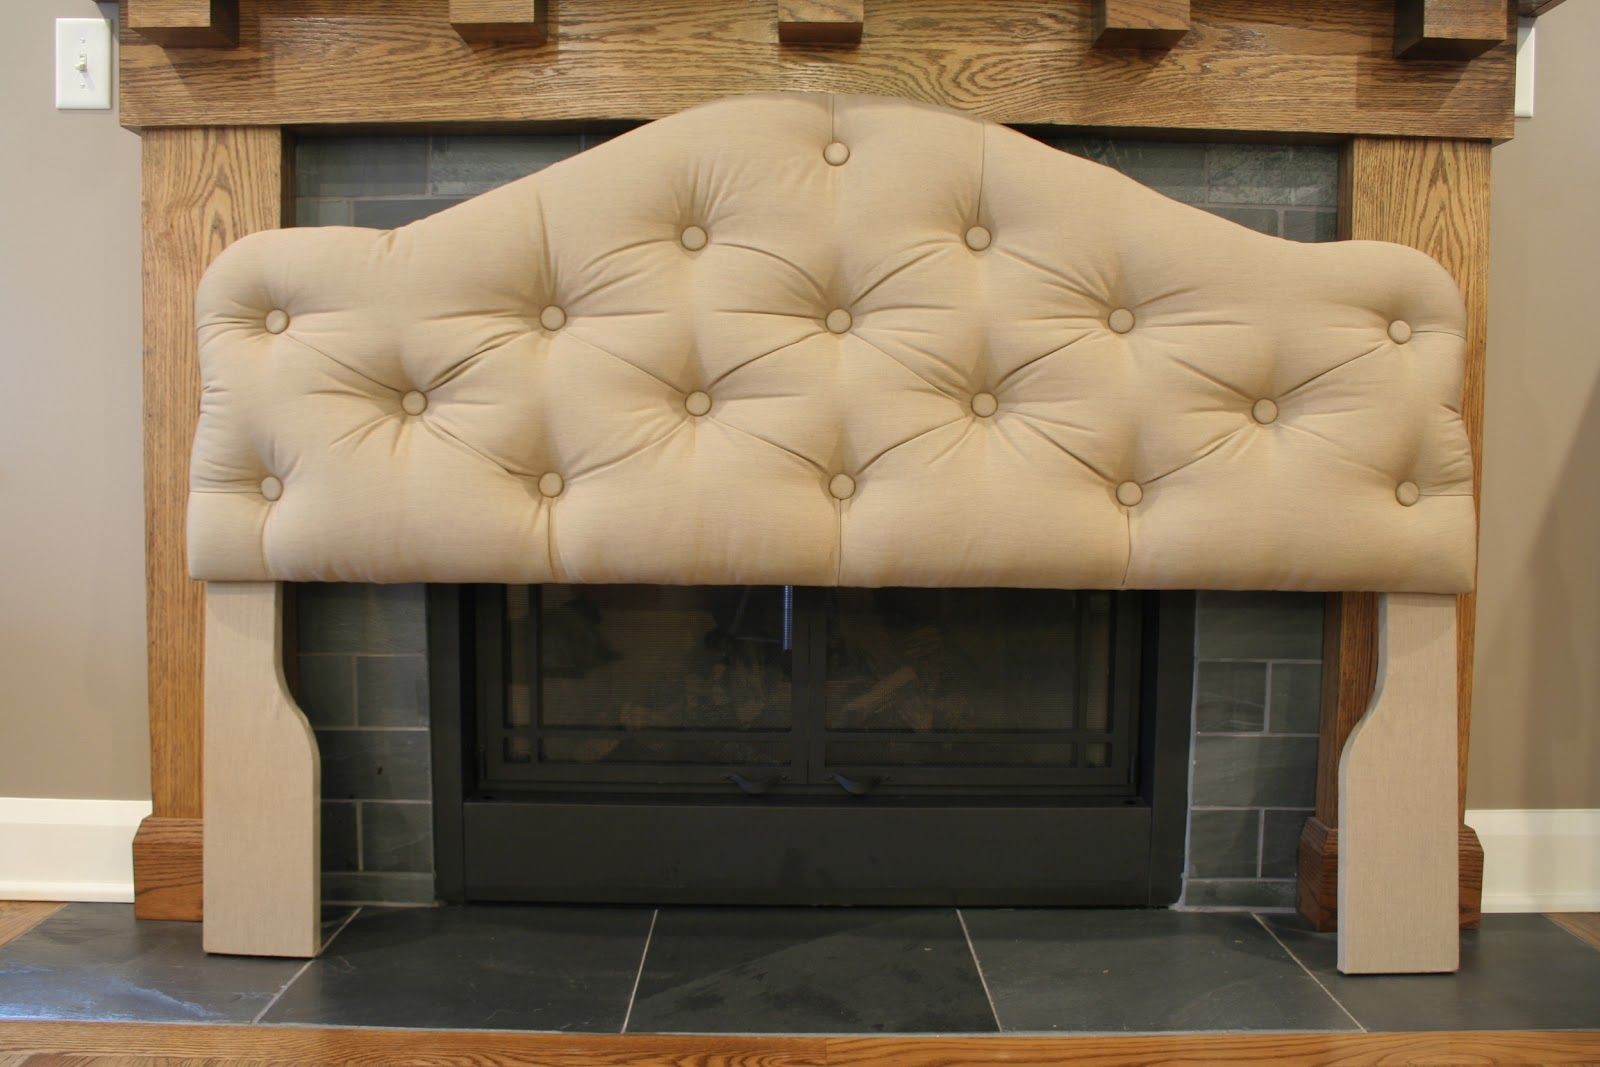 How to upholster a diamondtufted headboard in a different color